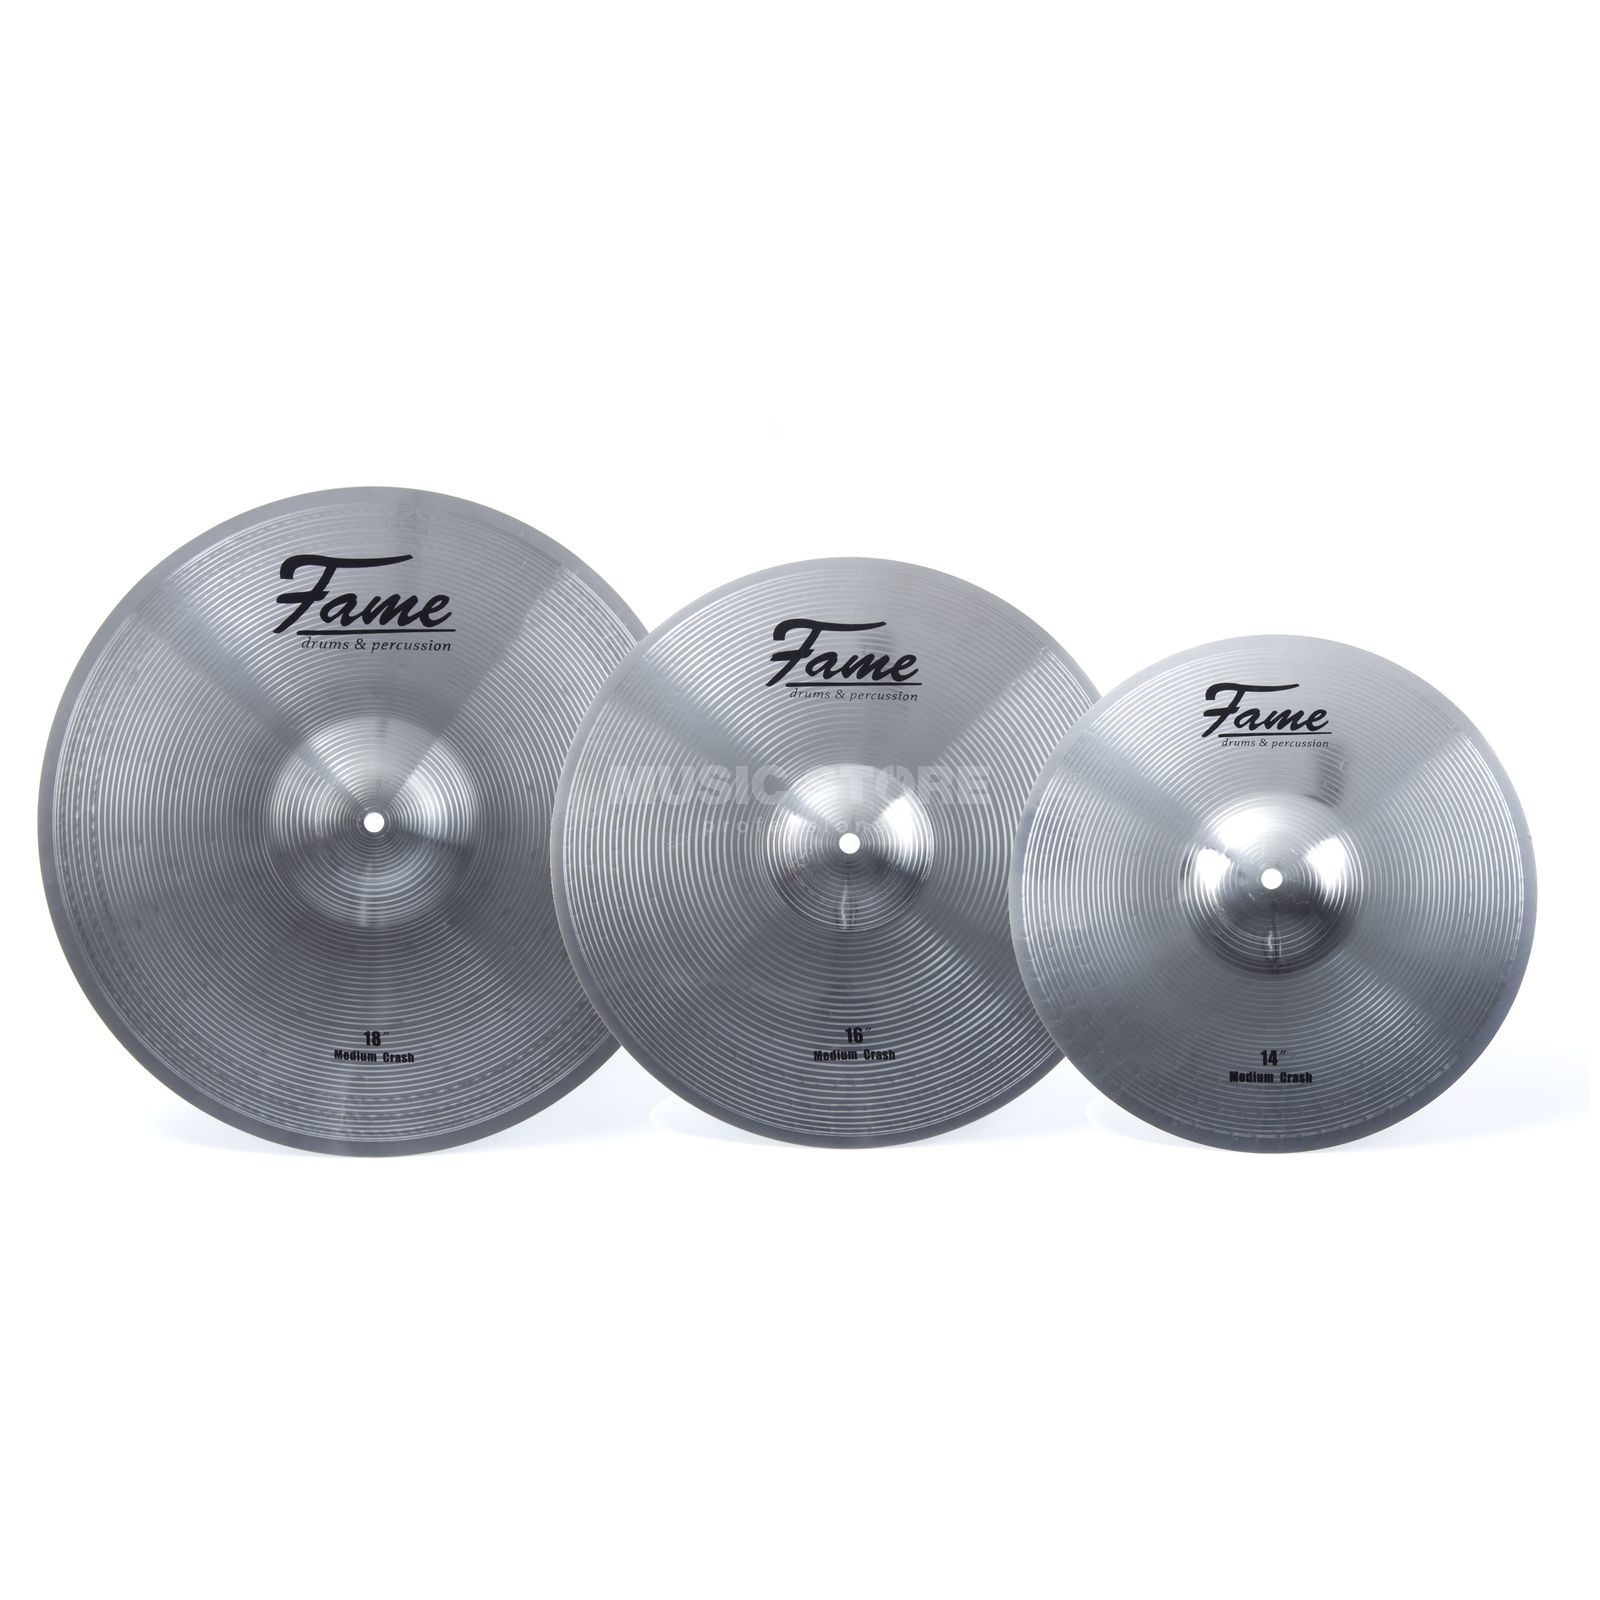 "SET FAME Reflex Crash Set 14"", 16"", 18"" Produktbild"